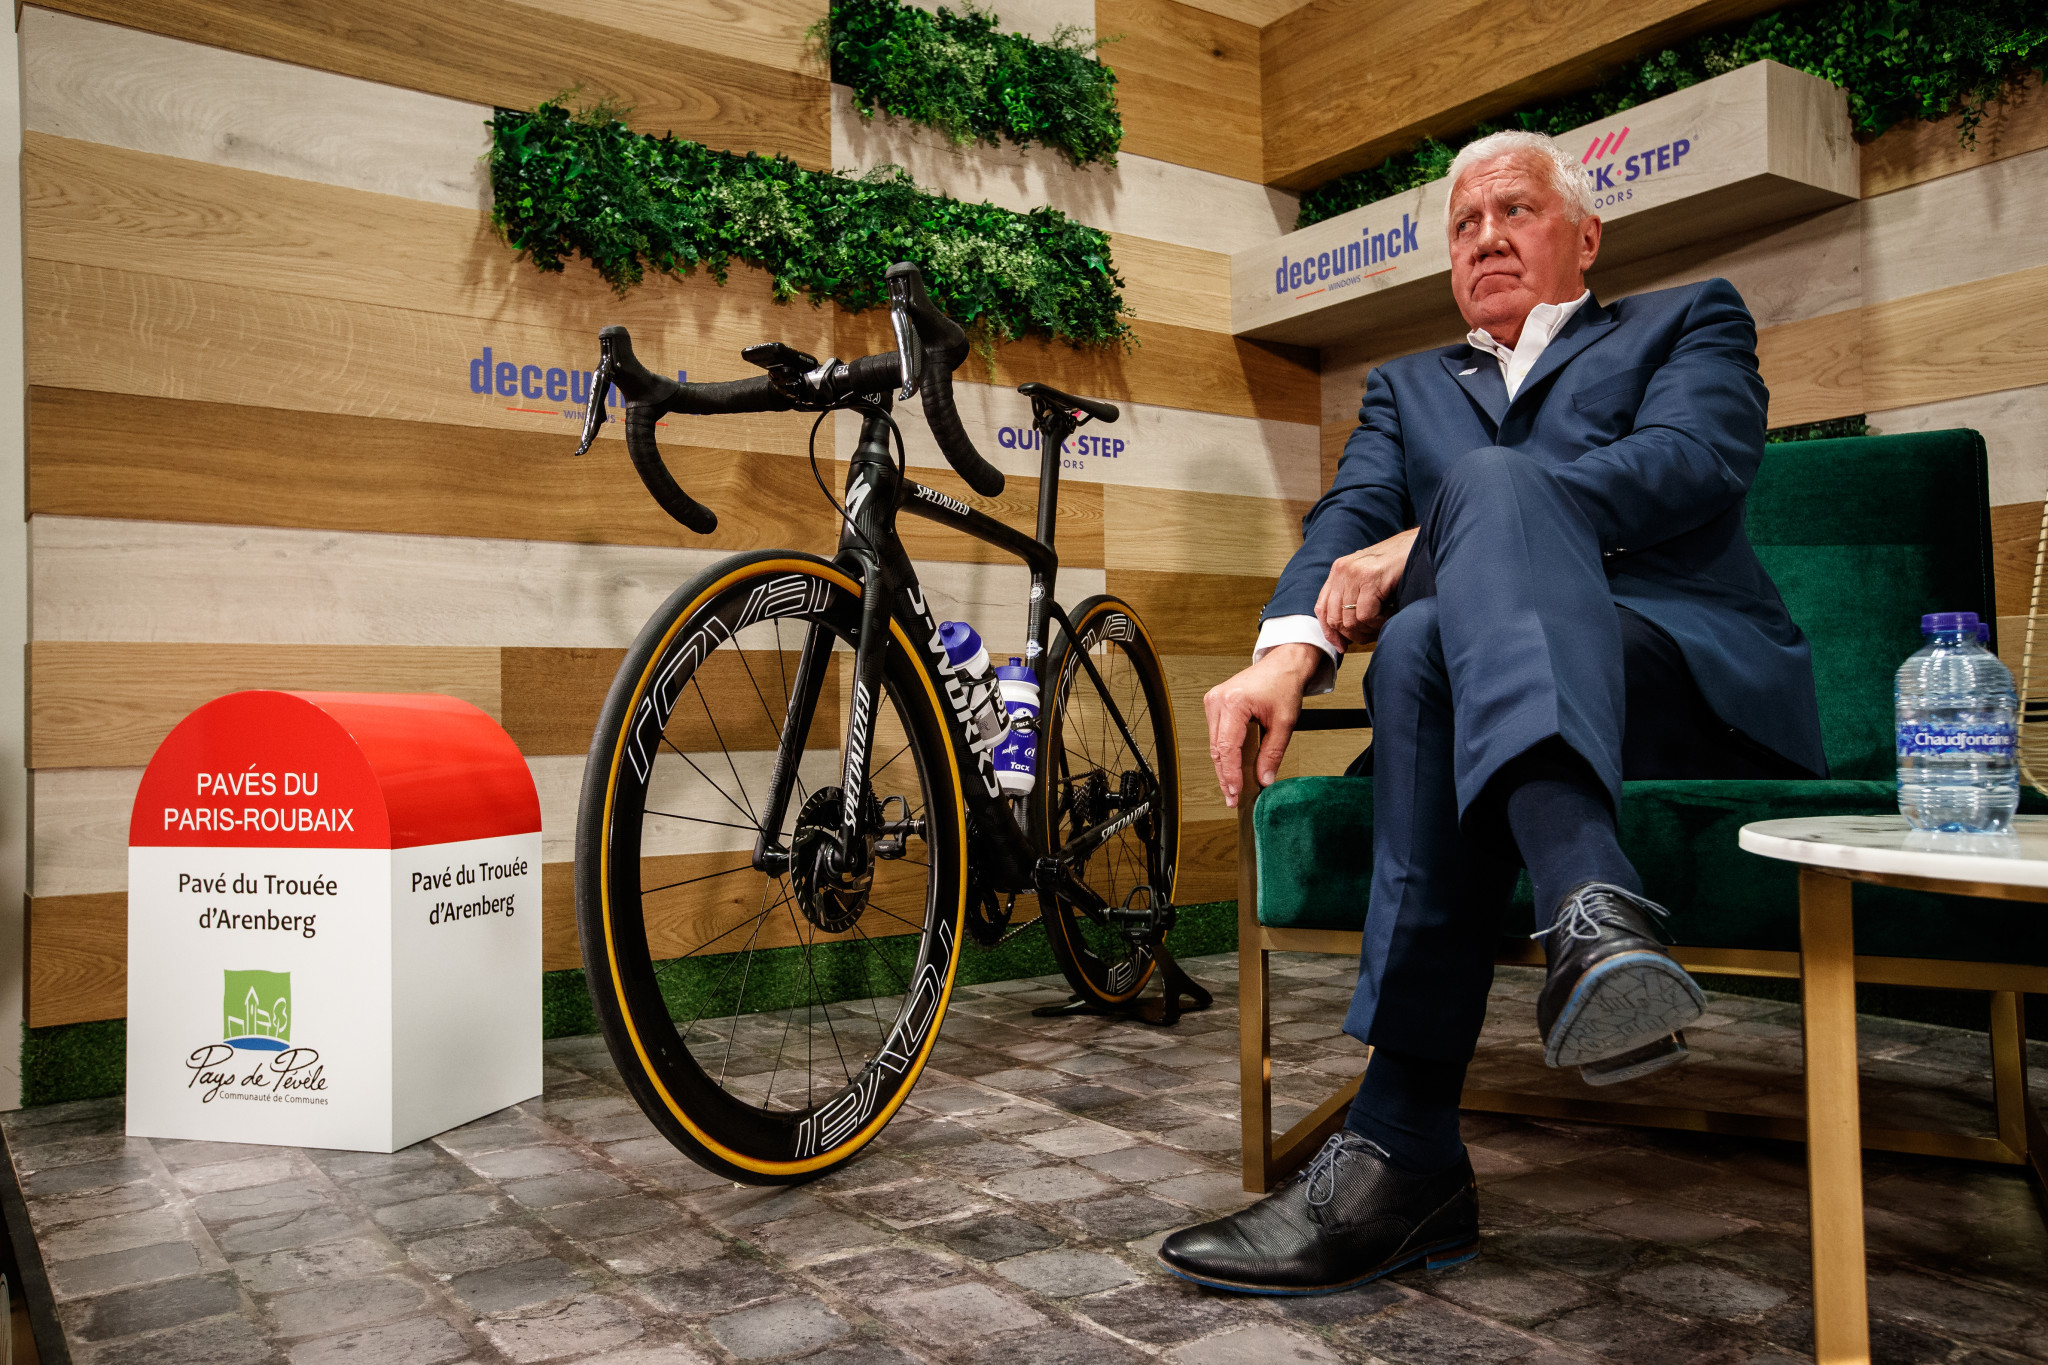 Deceuninck-QuickStep manager concerned Tour de France cancellation would collapse cycling model